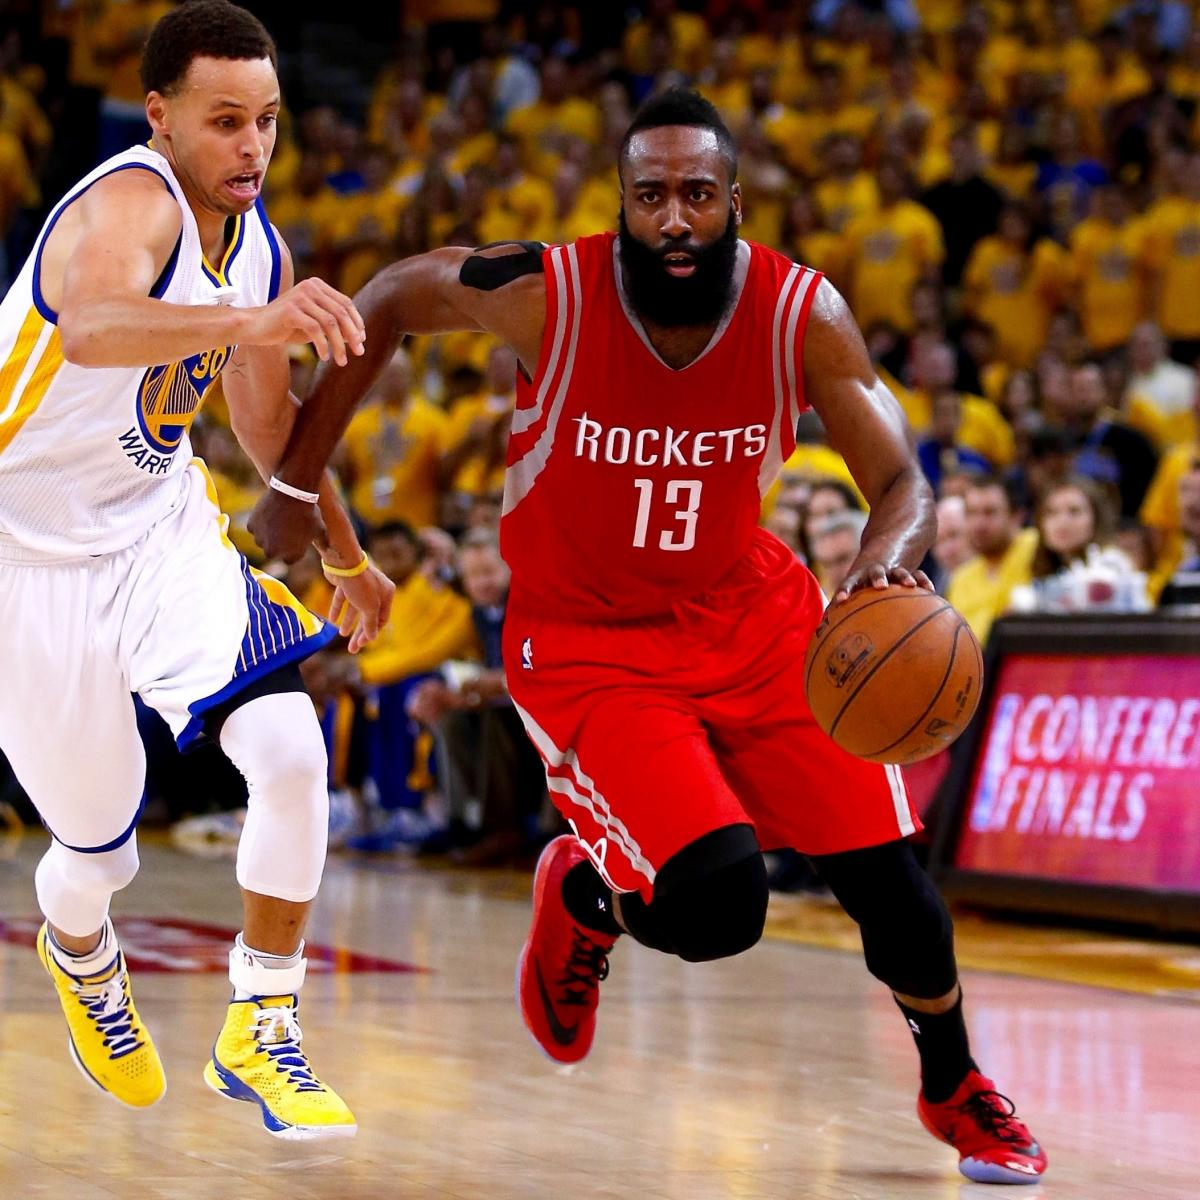 Rockets Vs Warriors Twitter Reaction: Houston Rockets Vs. Golden State Warriors: Live Score And